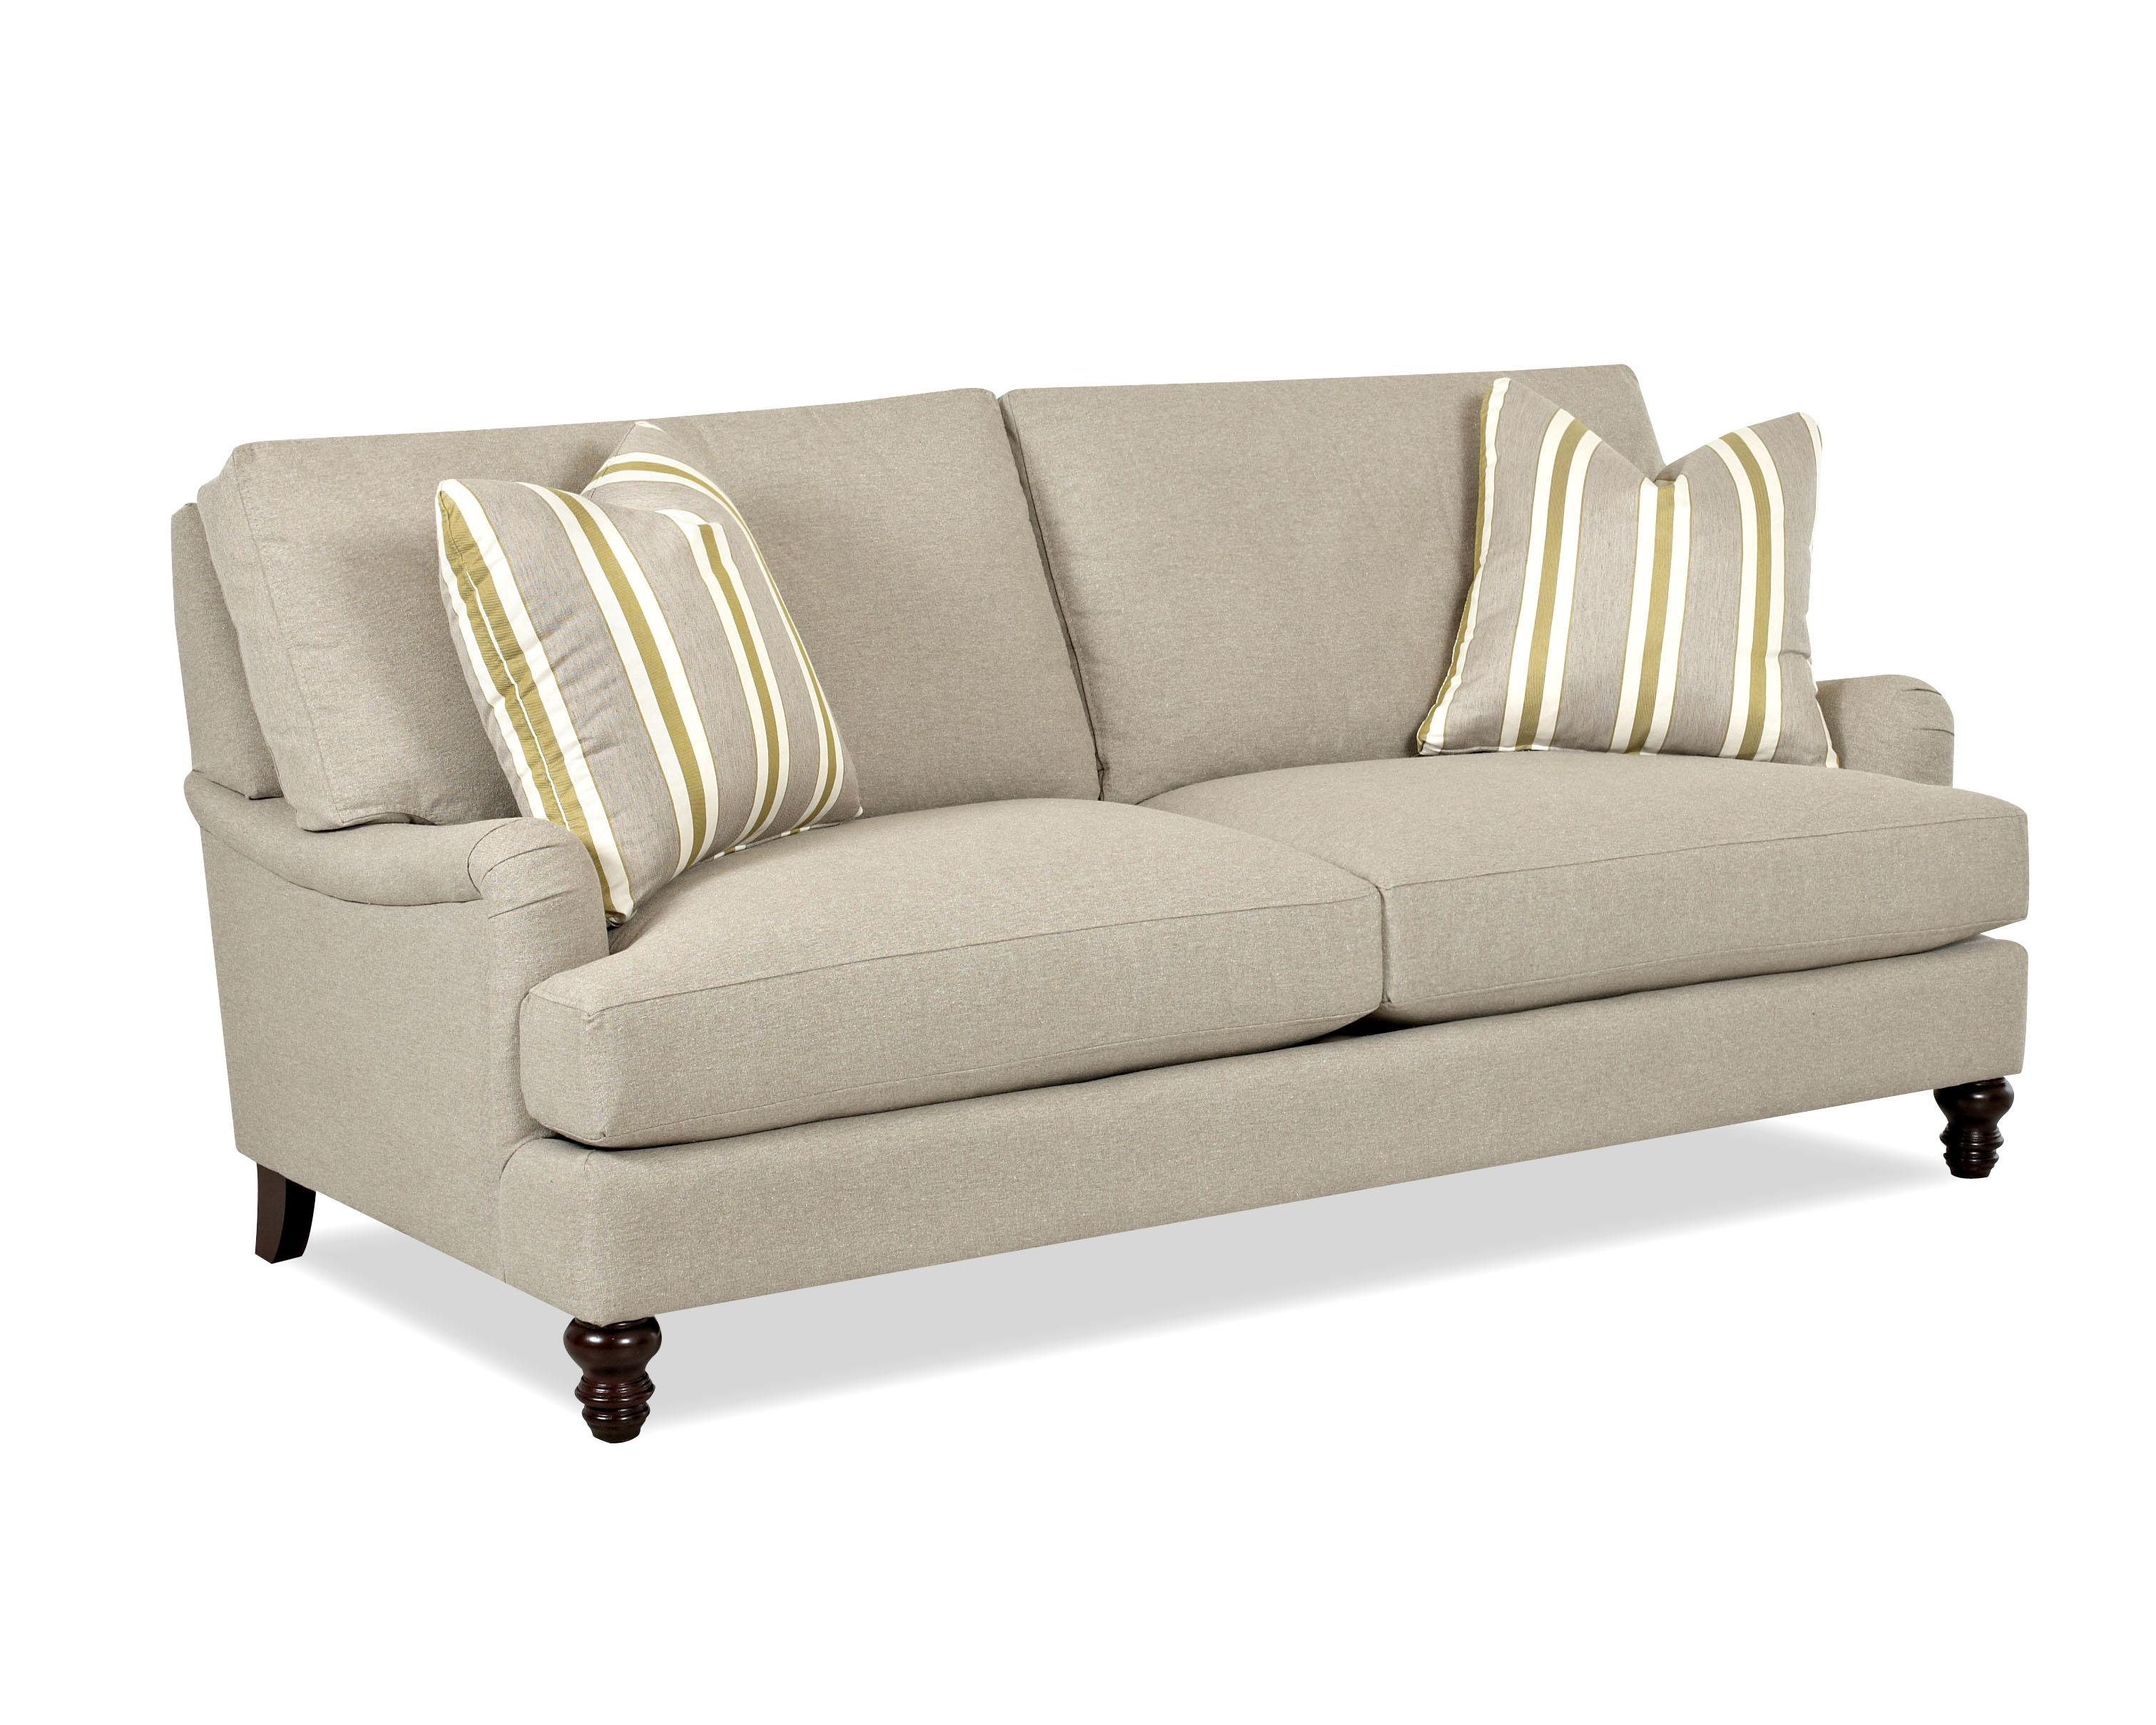 sofa upholstery west london best material for with cats traditional stationary t cushions and charles of